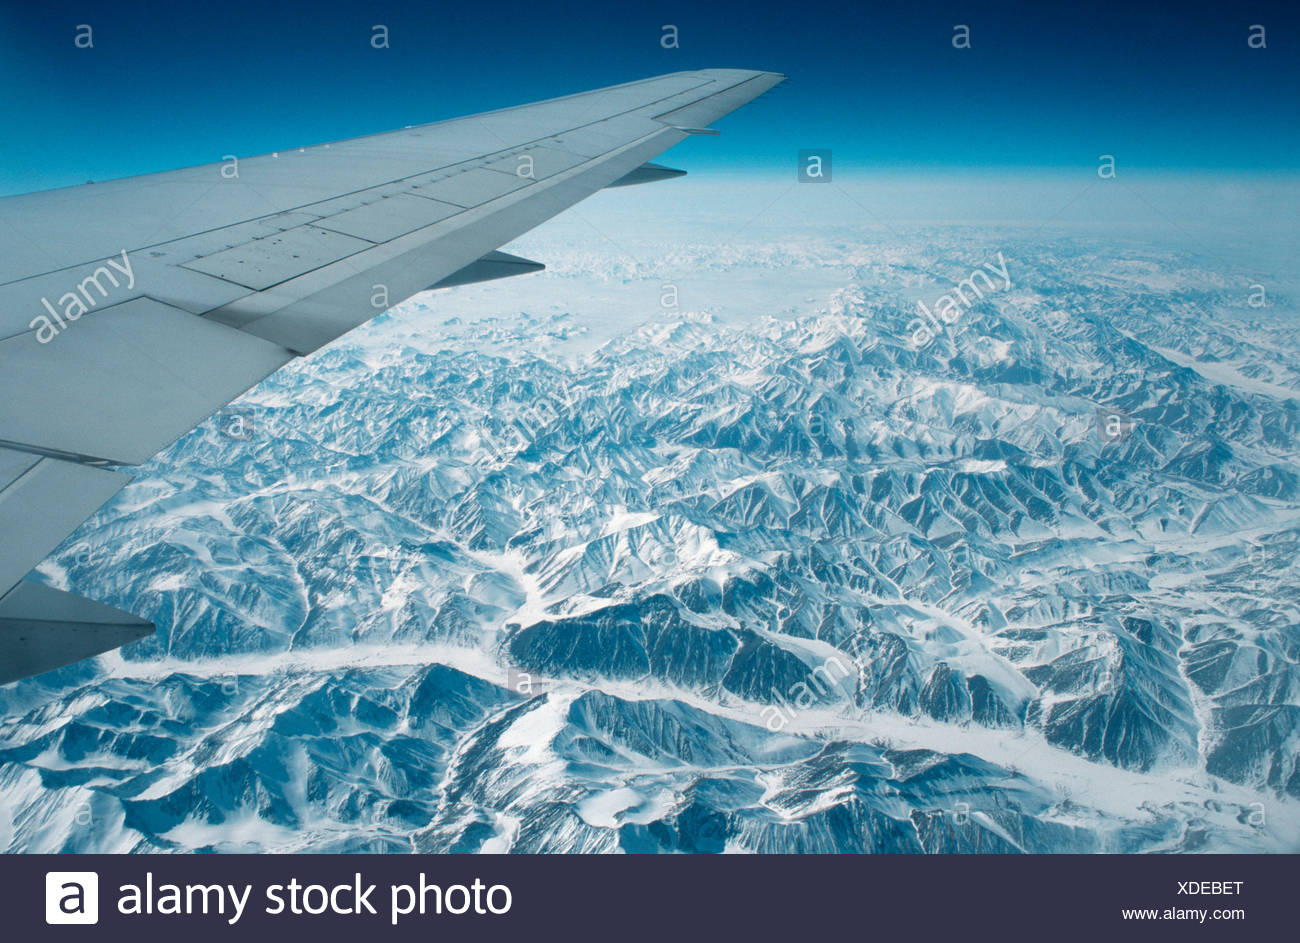 View from airplane / Blick aus Flugzeug - Stock Image